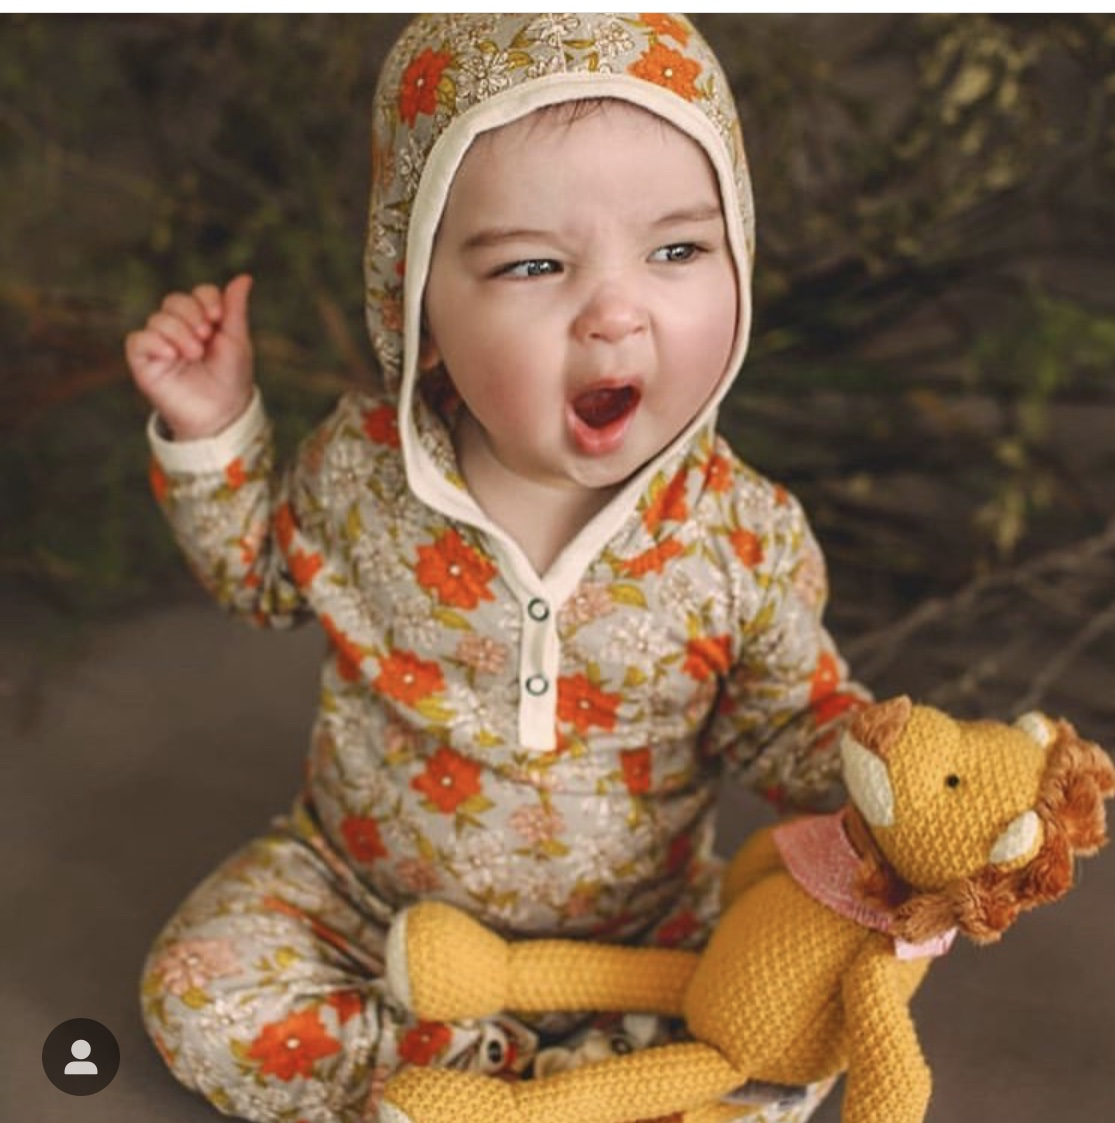 Children's - We have a hand curated line of organic children's clothing along with a great selection of baby necessities from JellyCat, LittleMe, Bearington, Little Giraffe ….and many more.